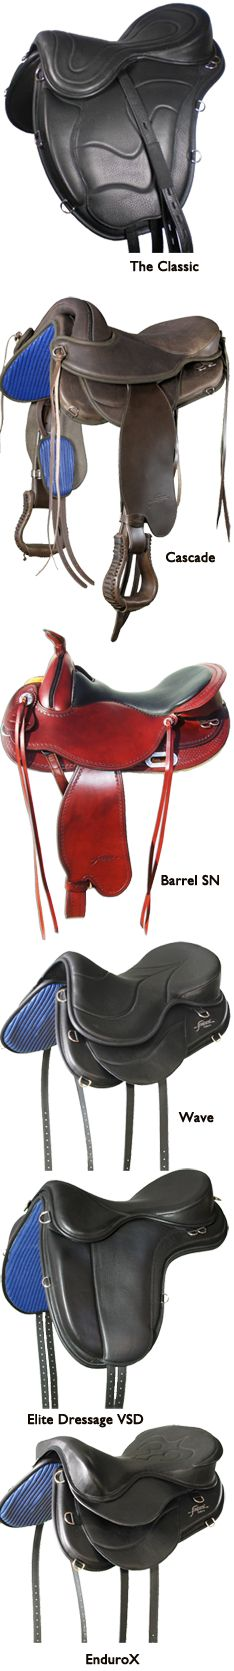 Saddle Up Treeless Saddles for Trail, Endurance, Competitive Distance Trail, Dressage, and Jumping